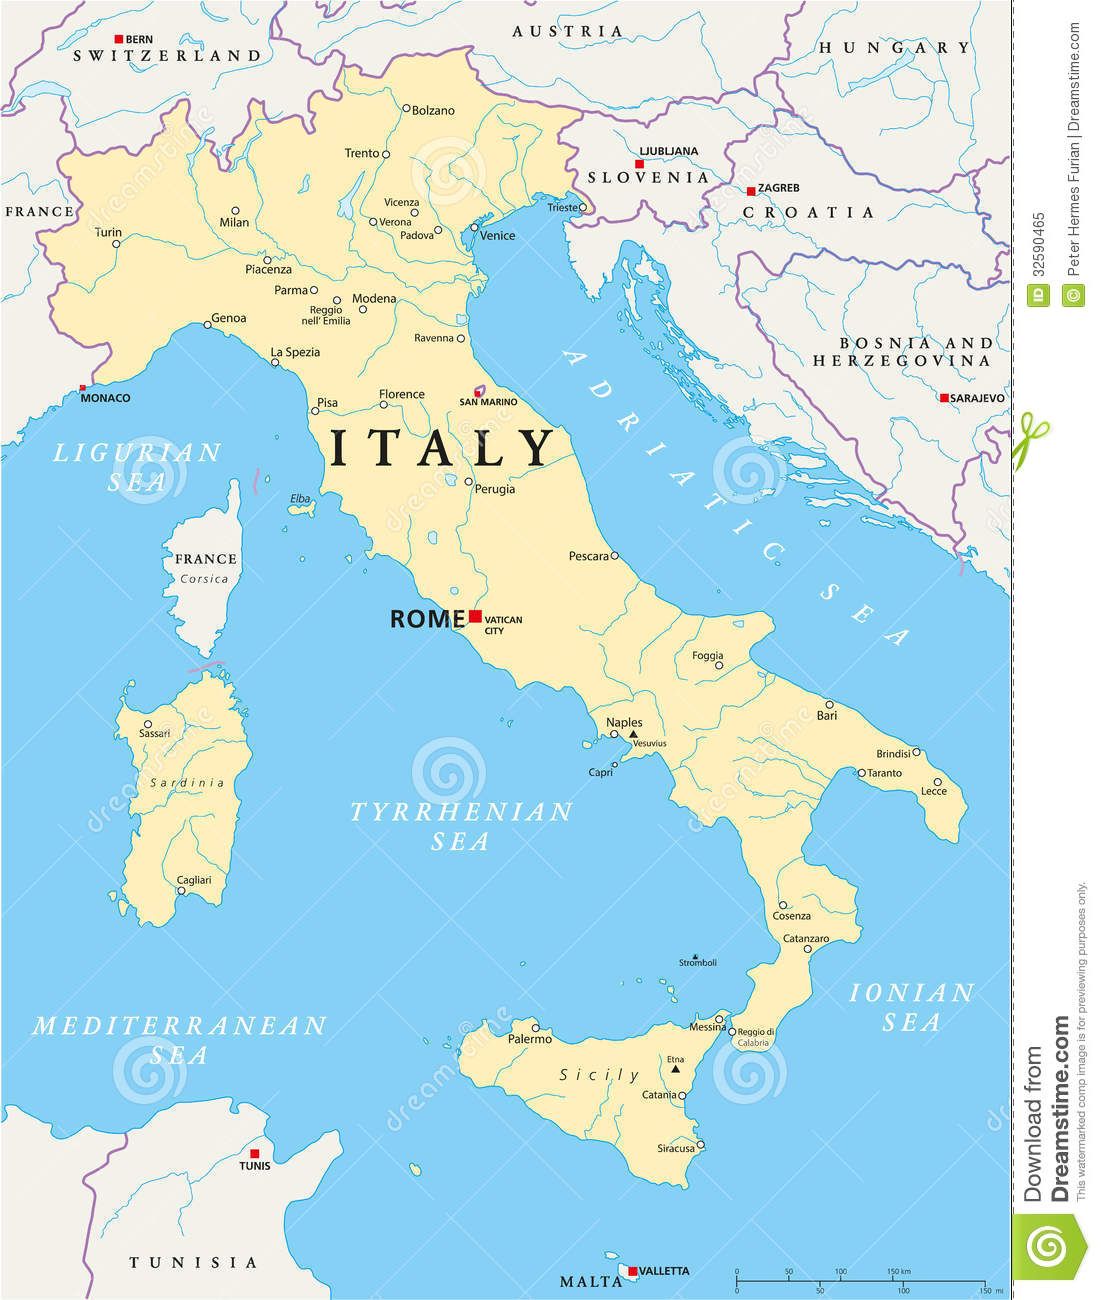 Detailed Map Of Italy In English.Italy Map Stock Vector Illustration Of Land Cagliari 32590465